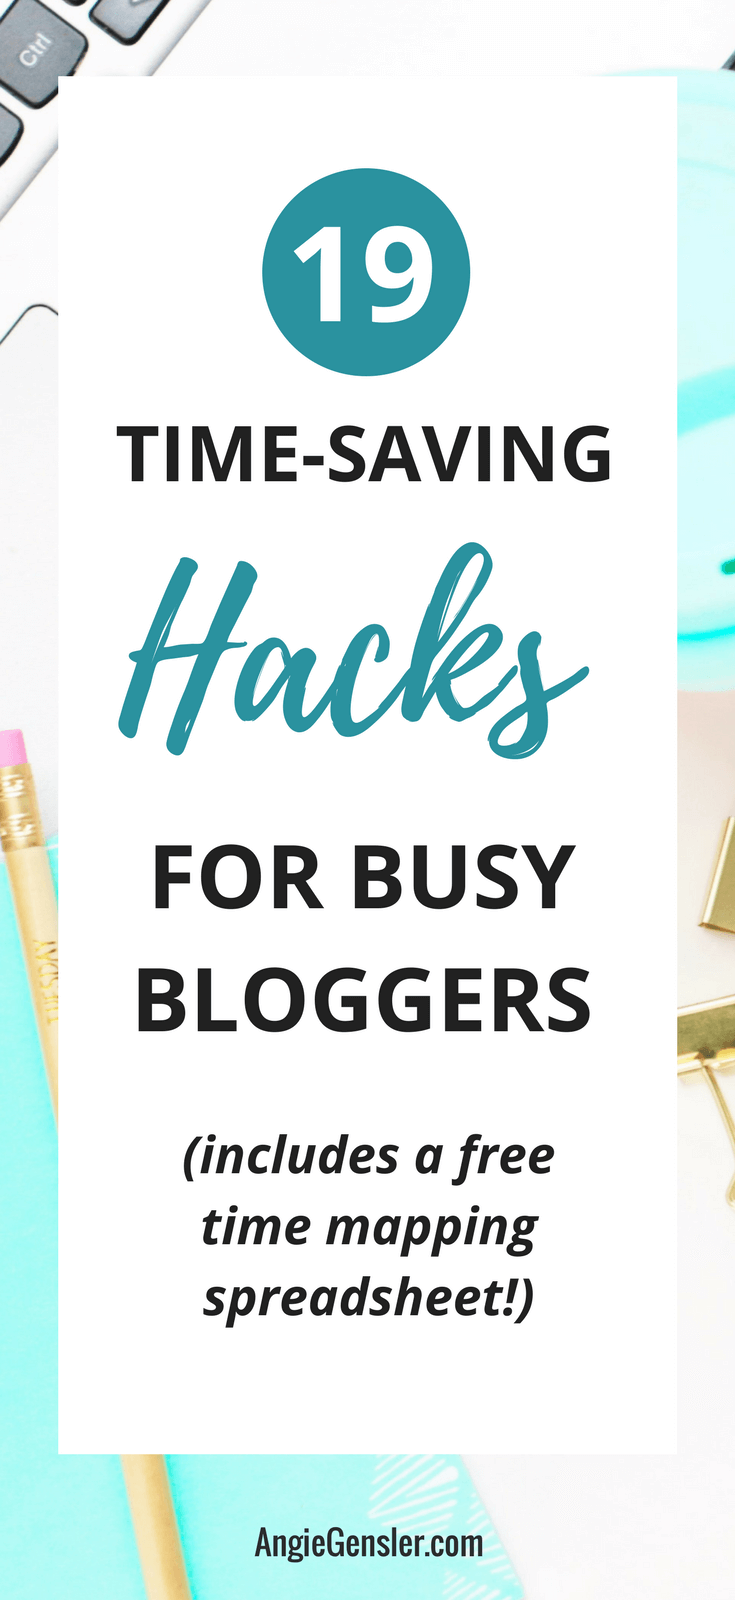 Blogger Hacks - 19 Time-Saving Tips and Tricks for Busy Bloggers